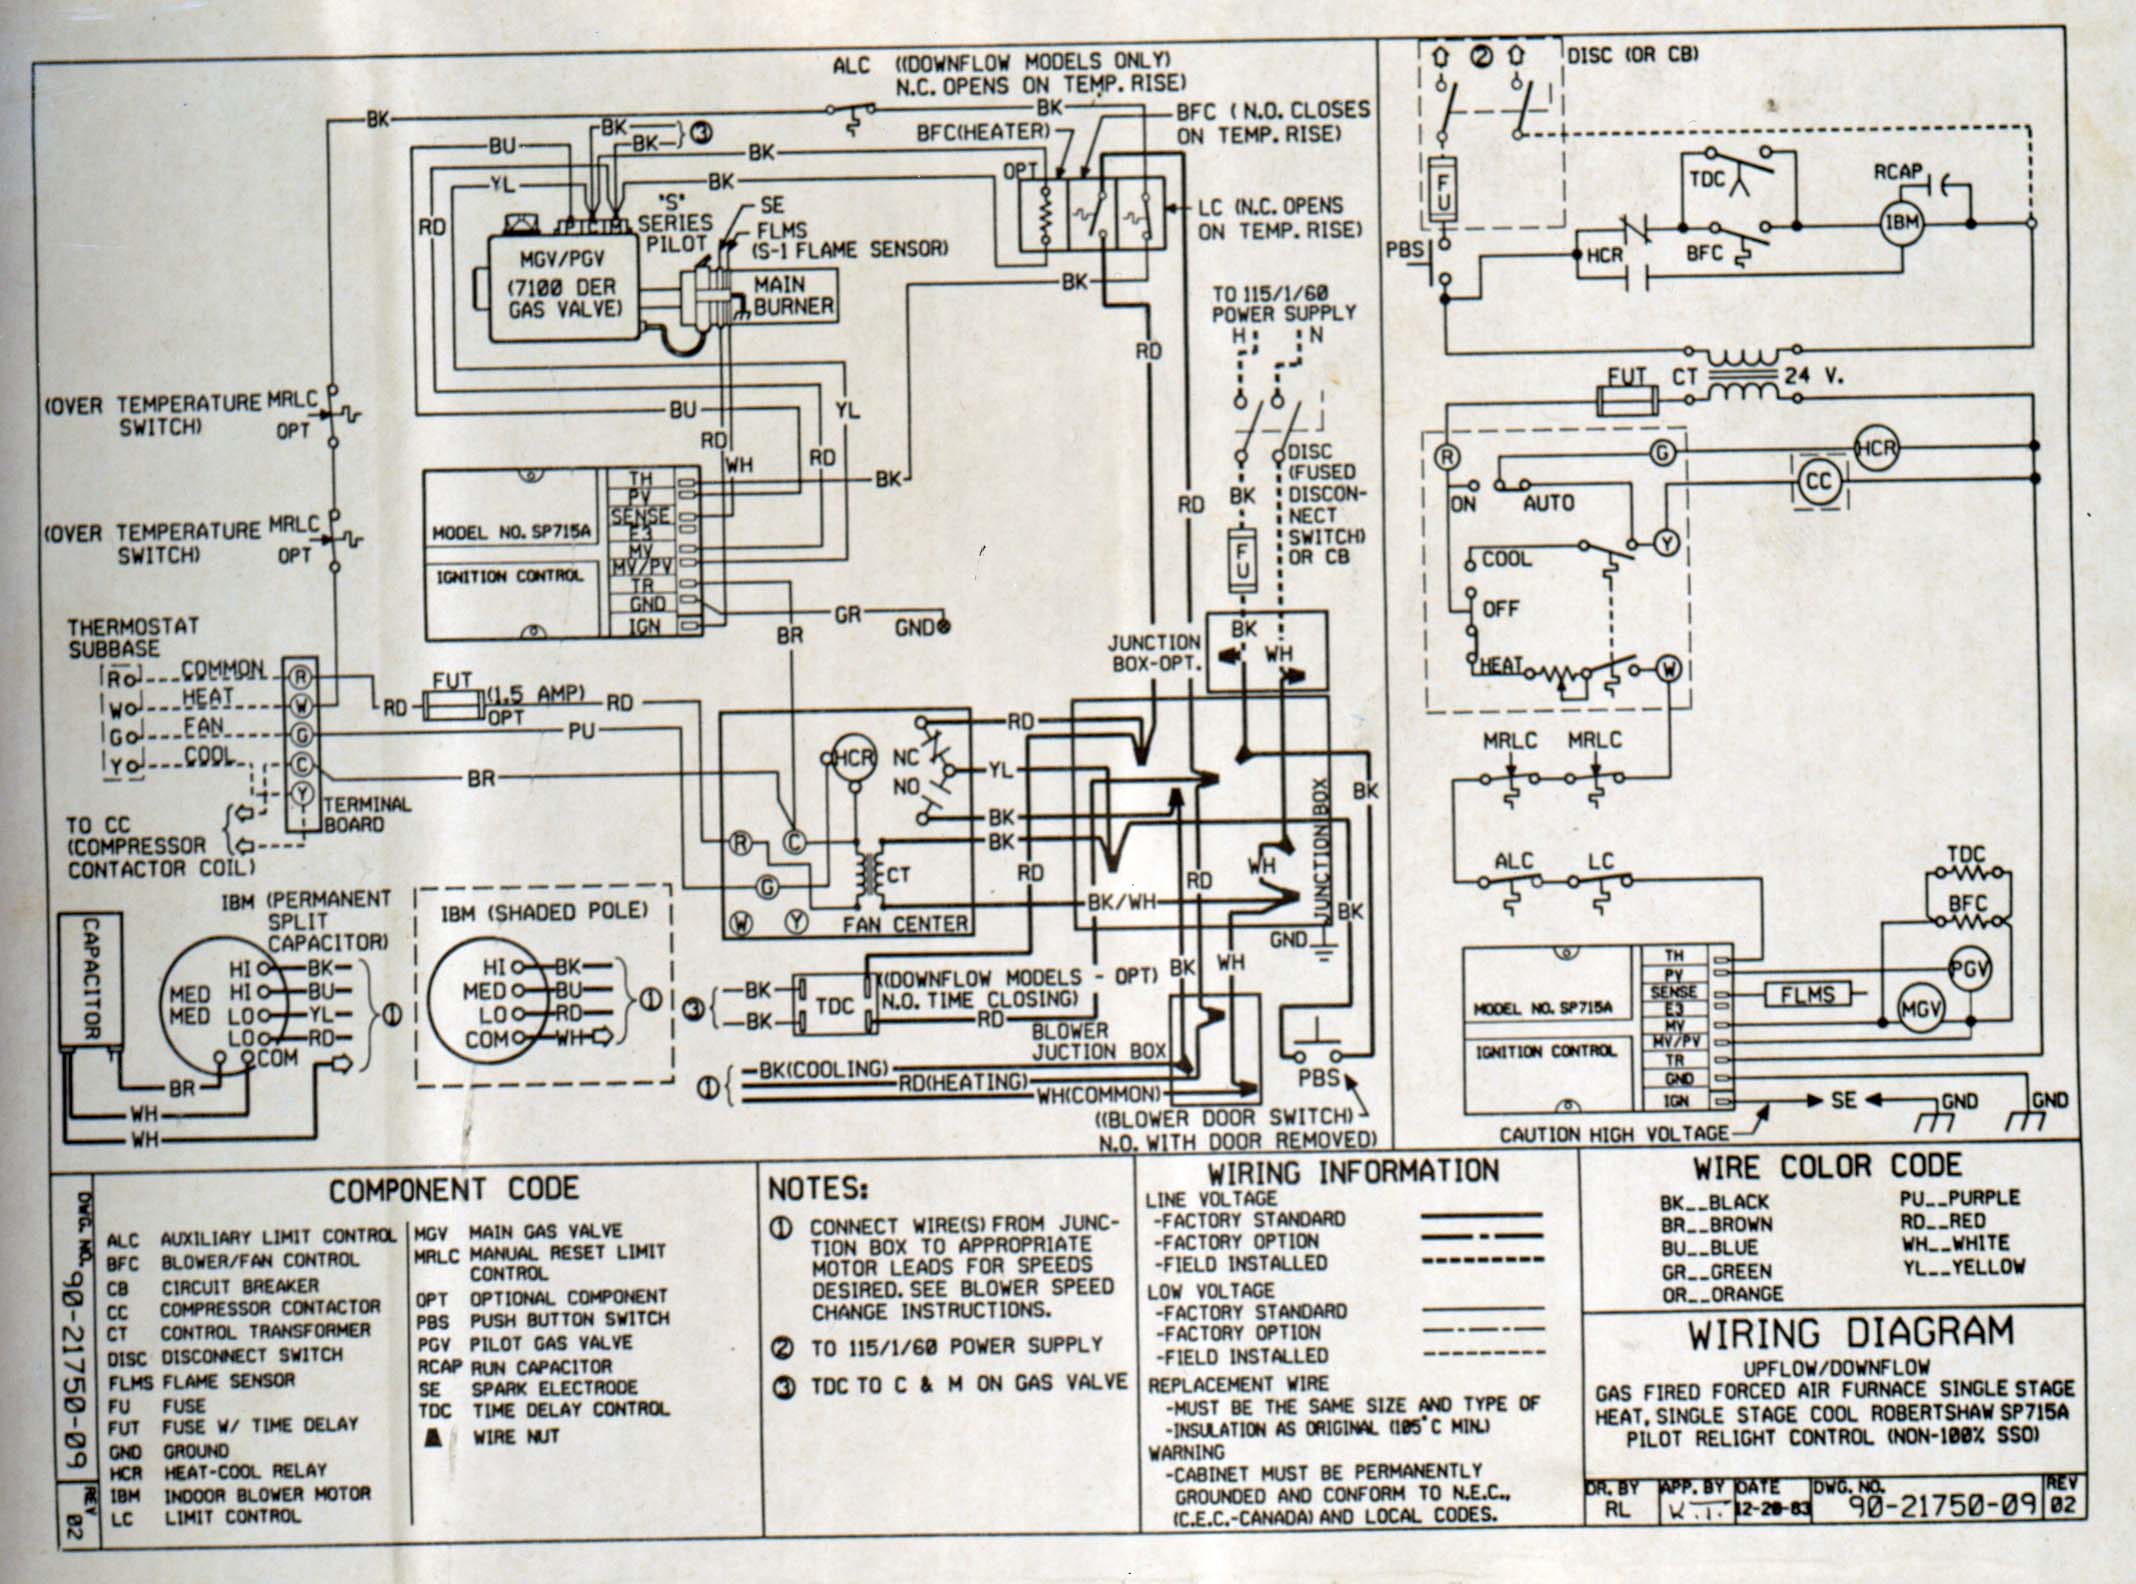 american standard furnace model twe036c140a1 wiring diagram rh dmdelectro co